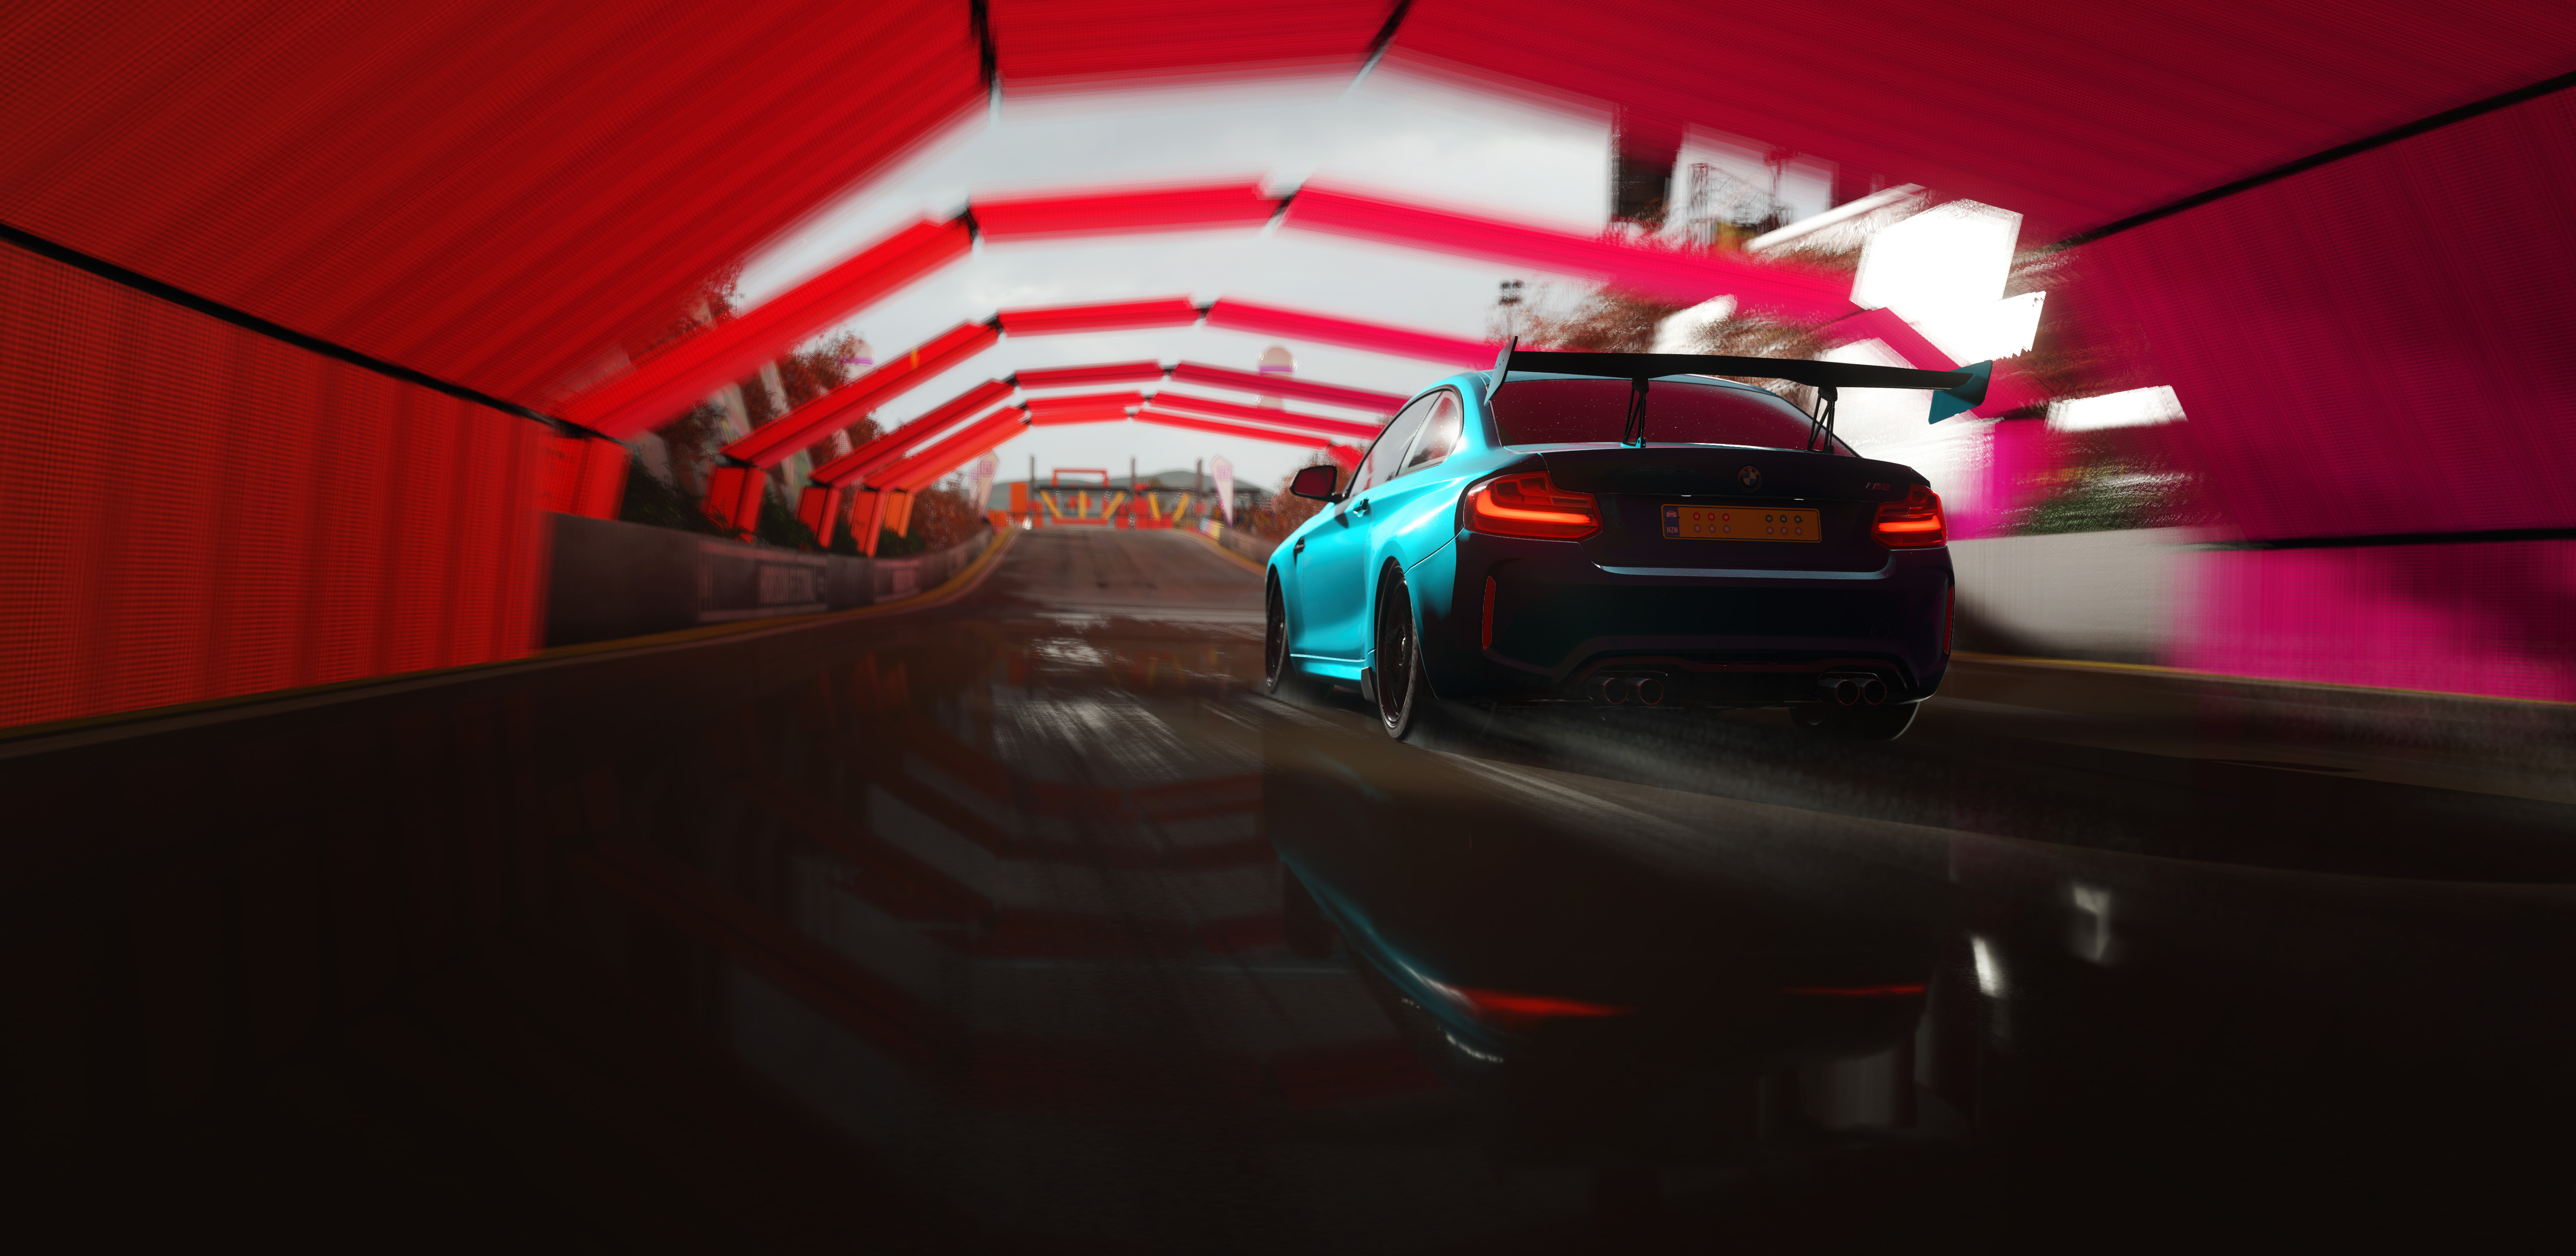 Forza horizon 4 2019 5k hd games 4k wallpapers images backgrounds photos and pictures - Forza logo wallpaper ...